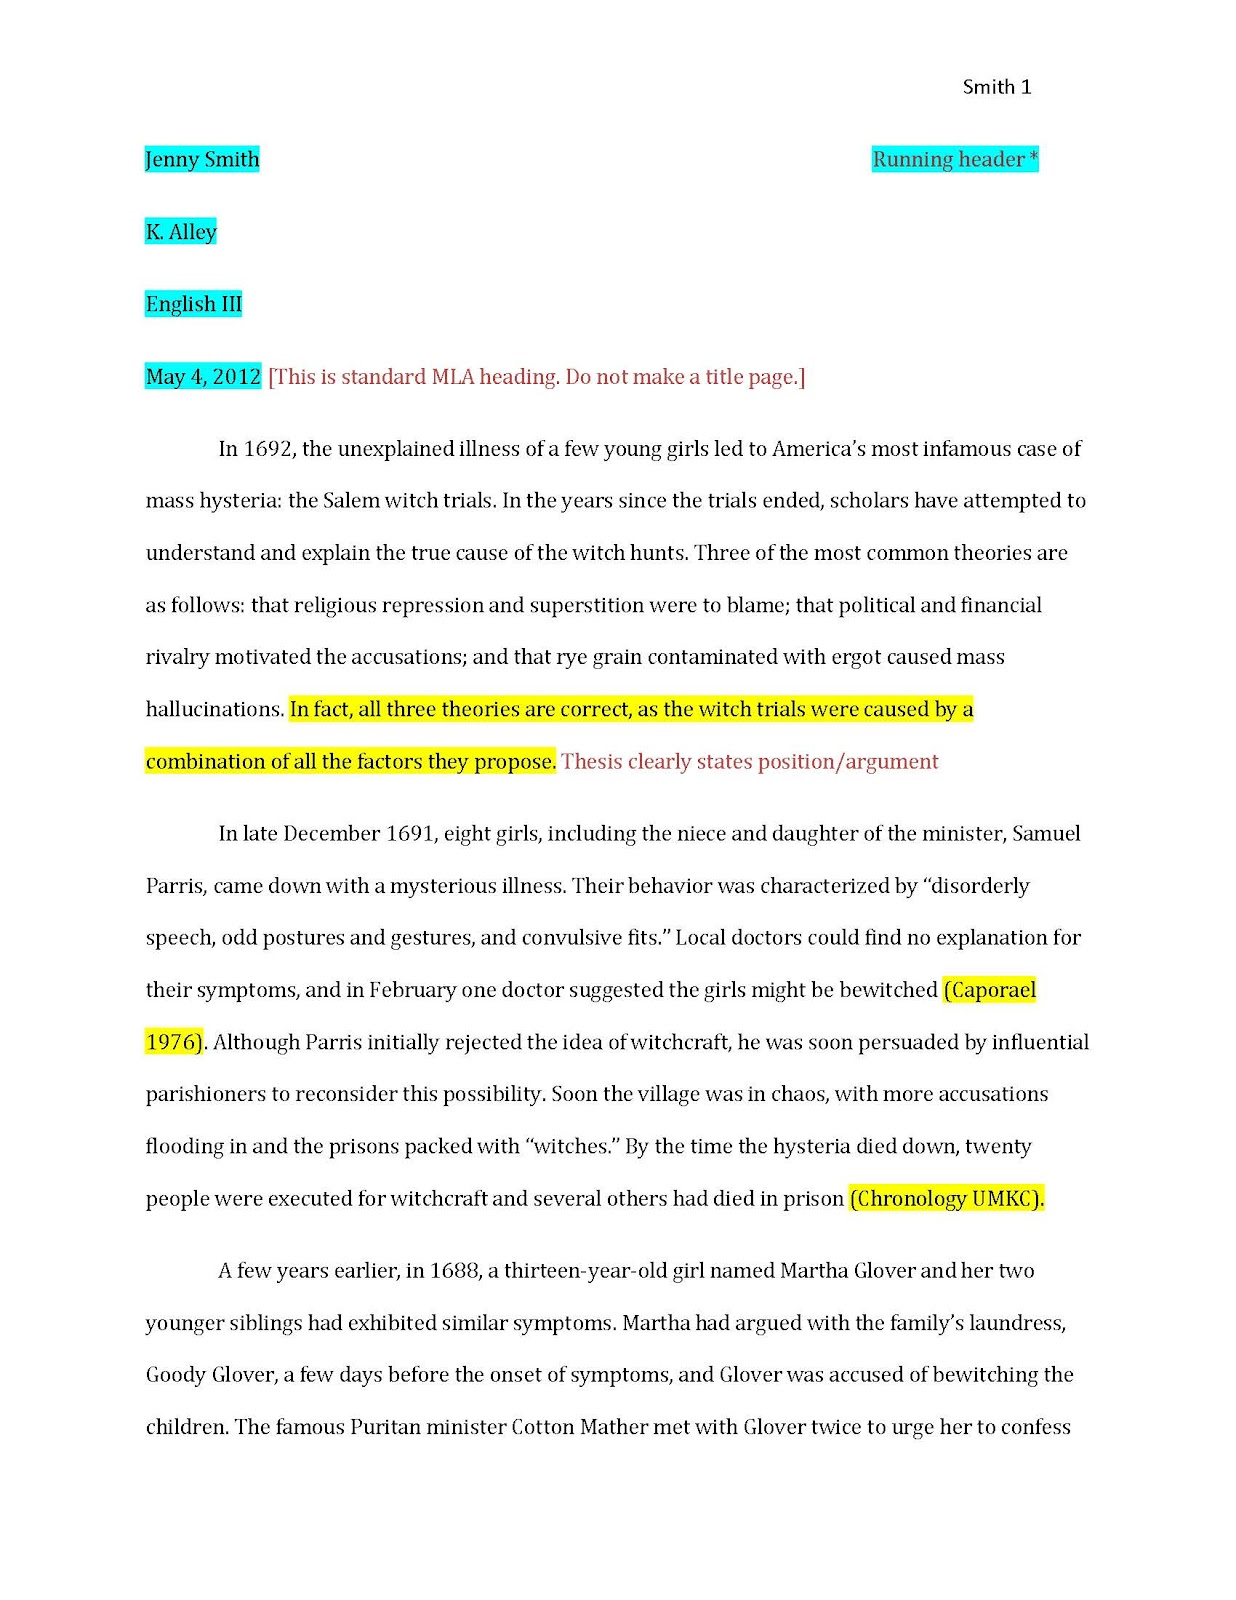 english class essay what is business ethics essay also  english essay samples citation in essay citation in essay gxart in essay citation purdue owl in text citation online what is a thesis statement for an essay